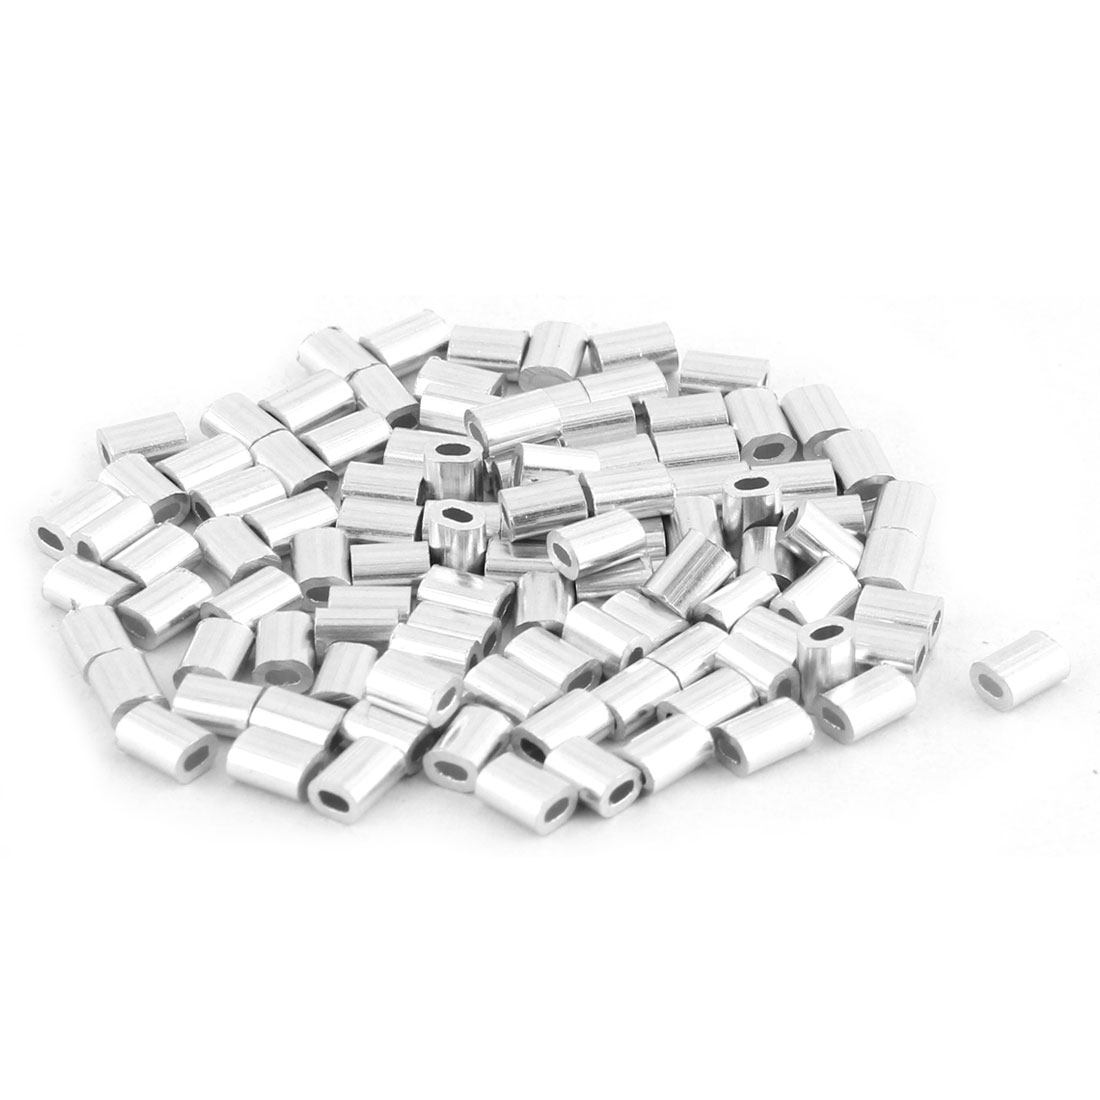 0.02 Inch Oval Ferrules Single Hole Wire Rope Aluminum Sleeves 4mm x 2mm Silver Tone 100pcs